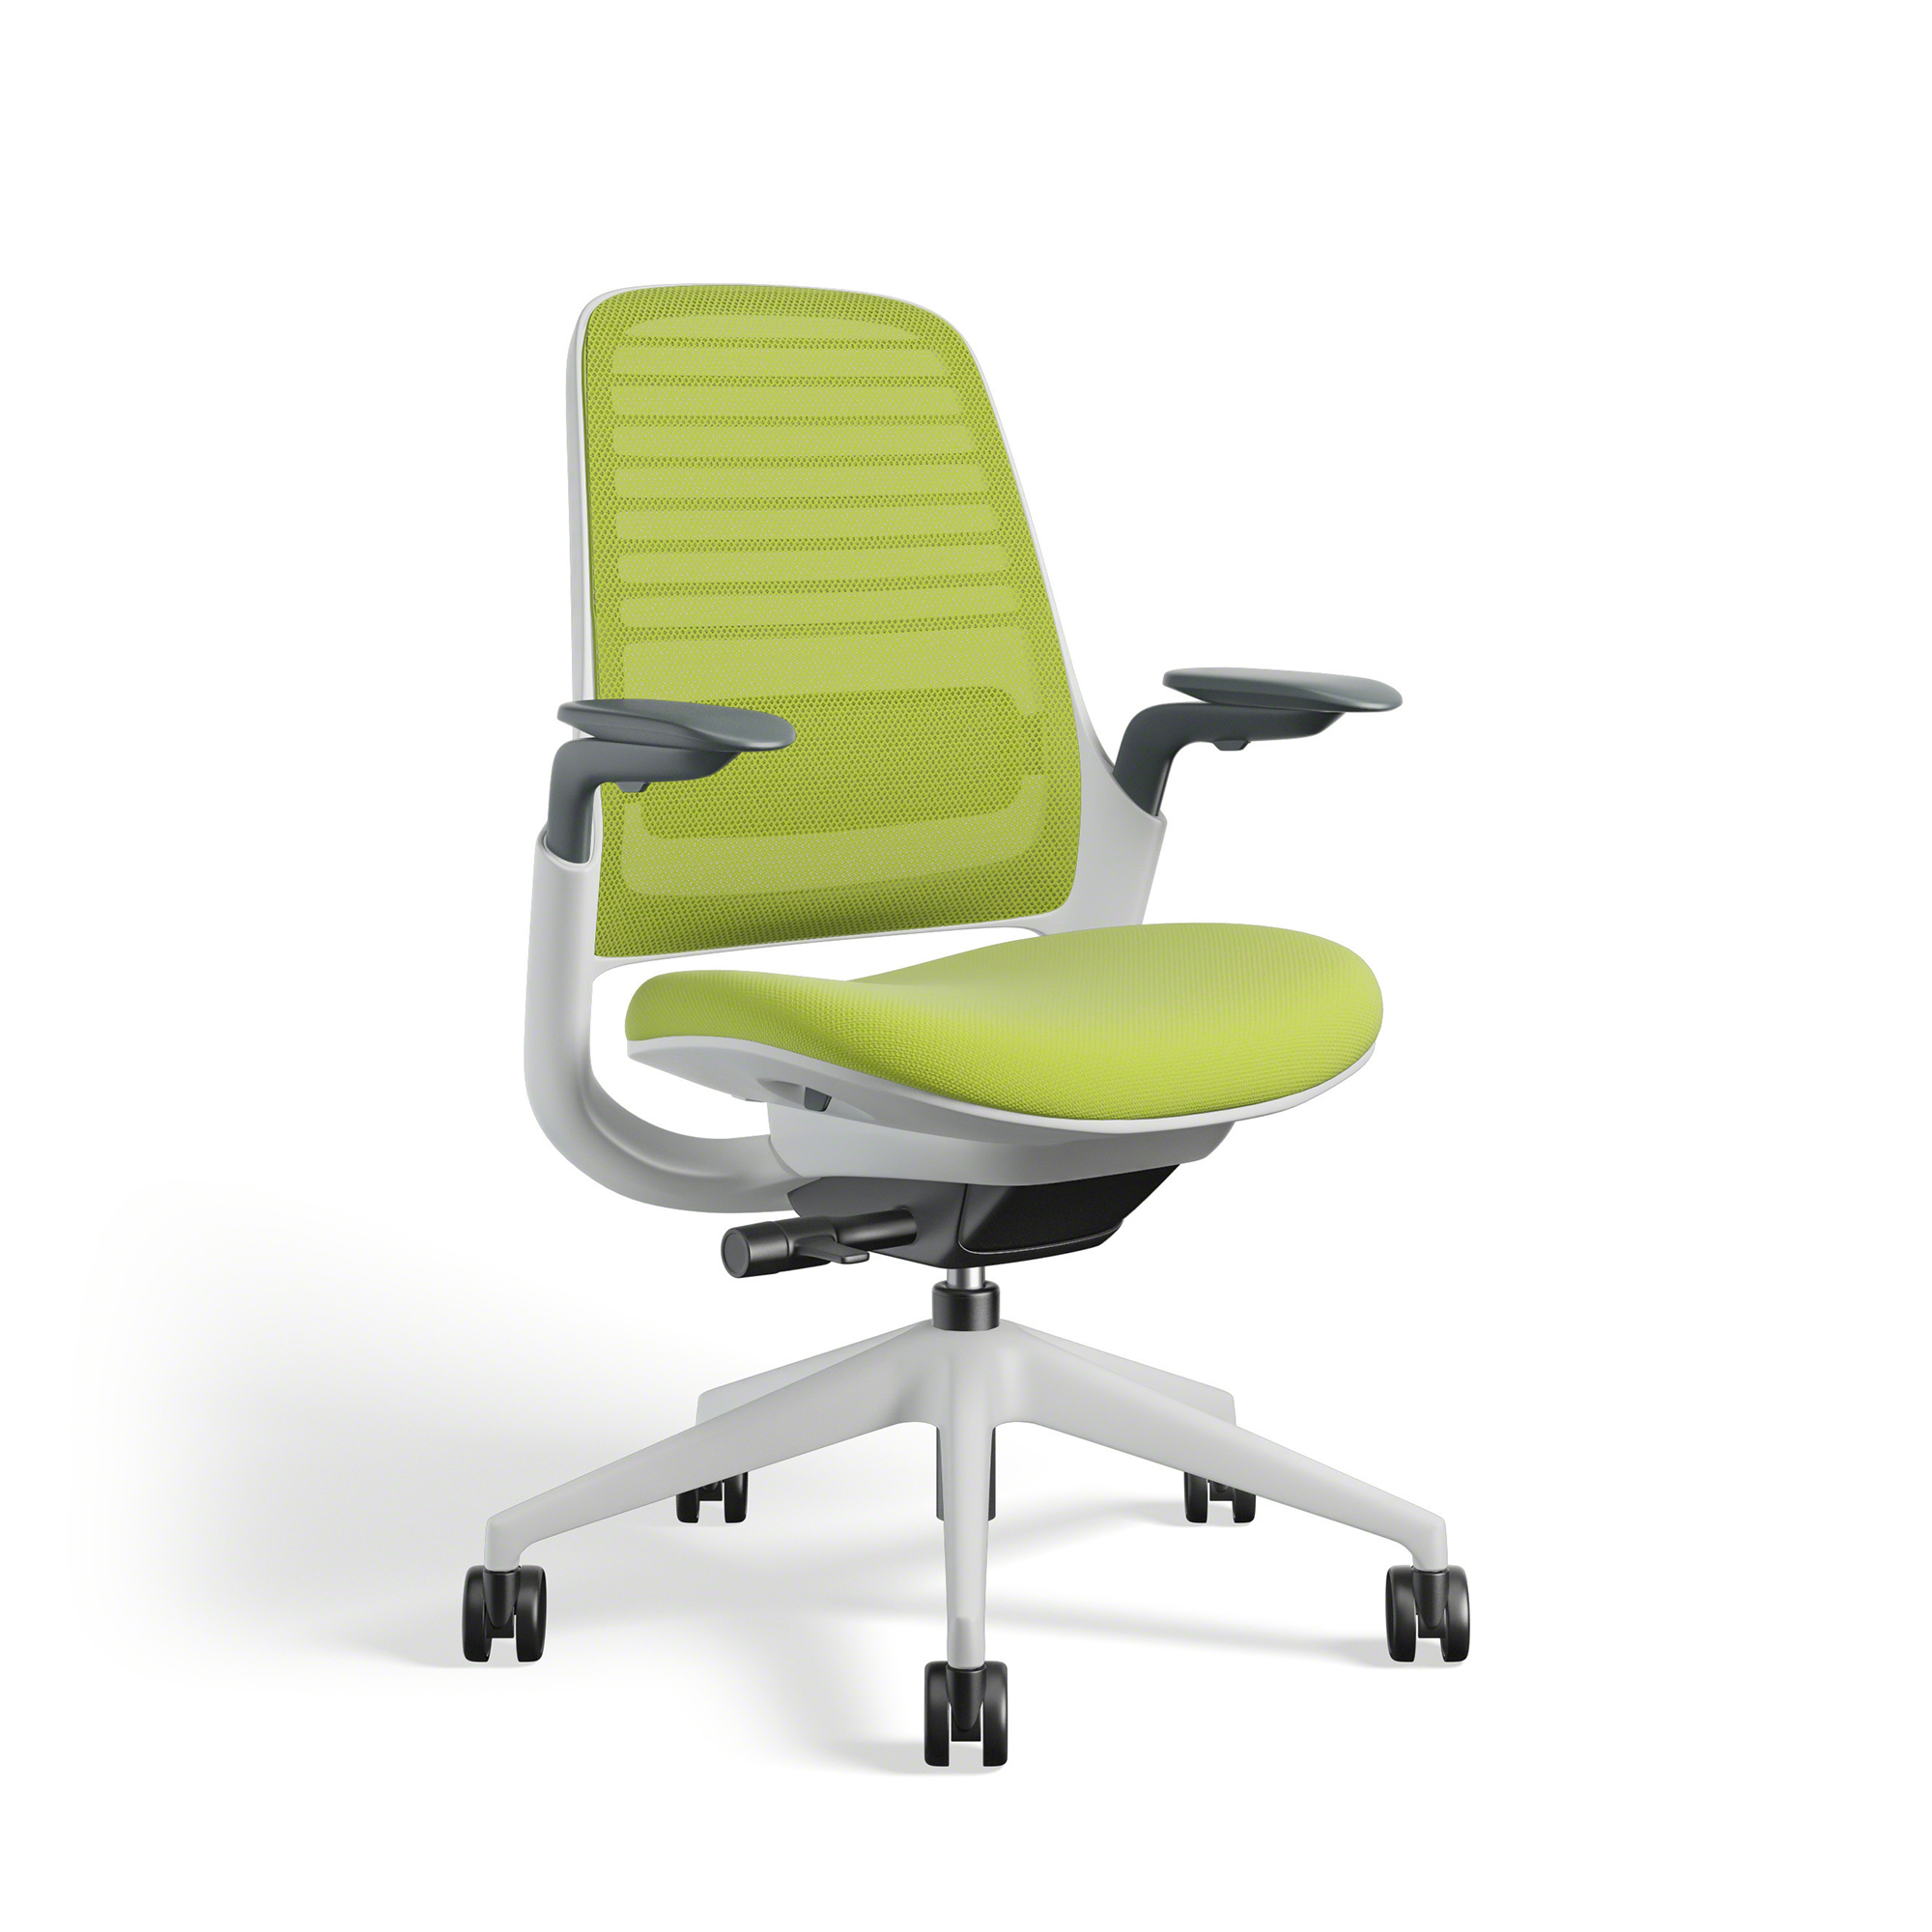 Lime Green Steelcase Series 1 Chair, White Frame | Office Furniture ...